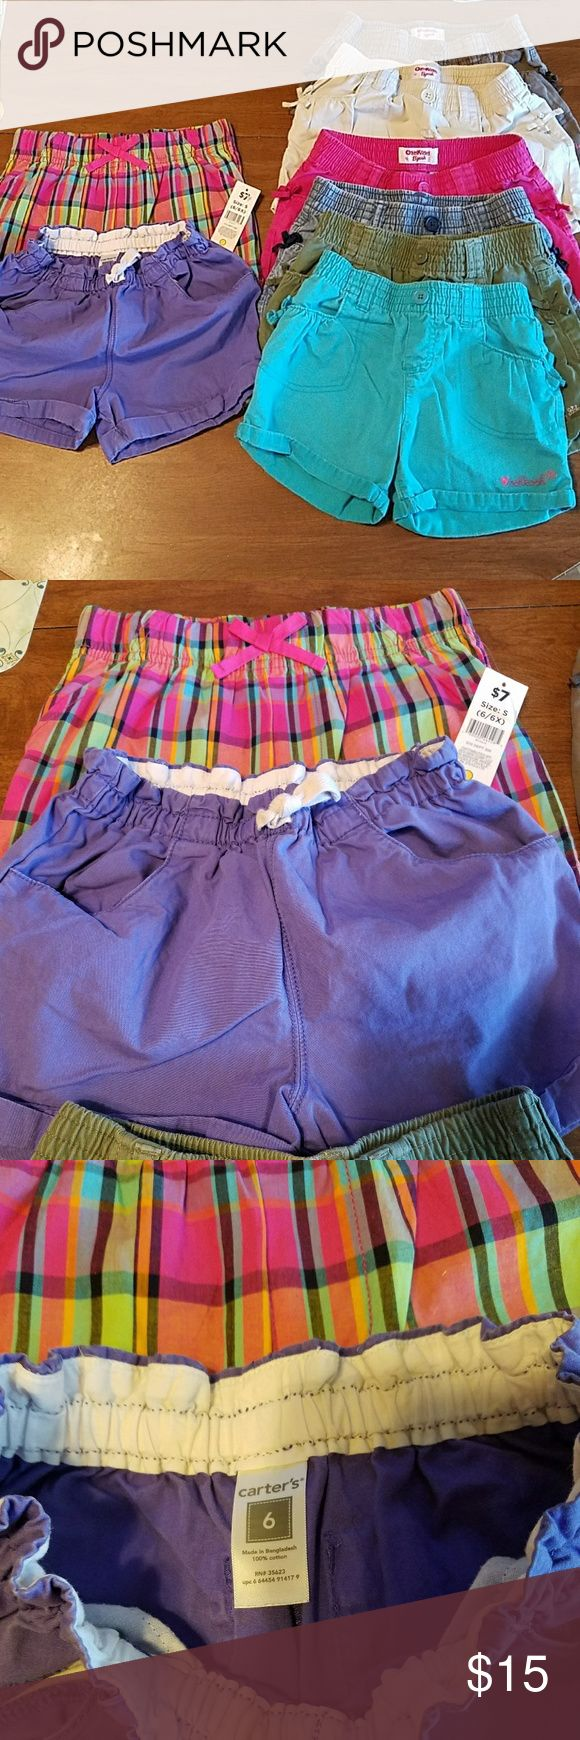 LOT of 8 pair of shorts size 6/6x in guc This lot with get any little girl through the summer. It includes 6 pair of OshKosh shorts. All have elastic waist bands and with 2 functional front pockets.  1 pair of Carter's purple shorts with elastic waist band and 2 functional front and back pockets. 1 NWT plaid shorts by bobbie brooks with elastic waist band but no pockets. All are in excellent condition. All are 100% cotton. OshKosh shorts colors are teal, Hunter green, blue jean, pink, khaki…